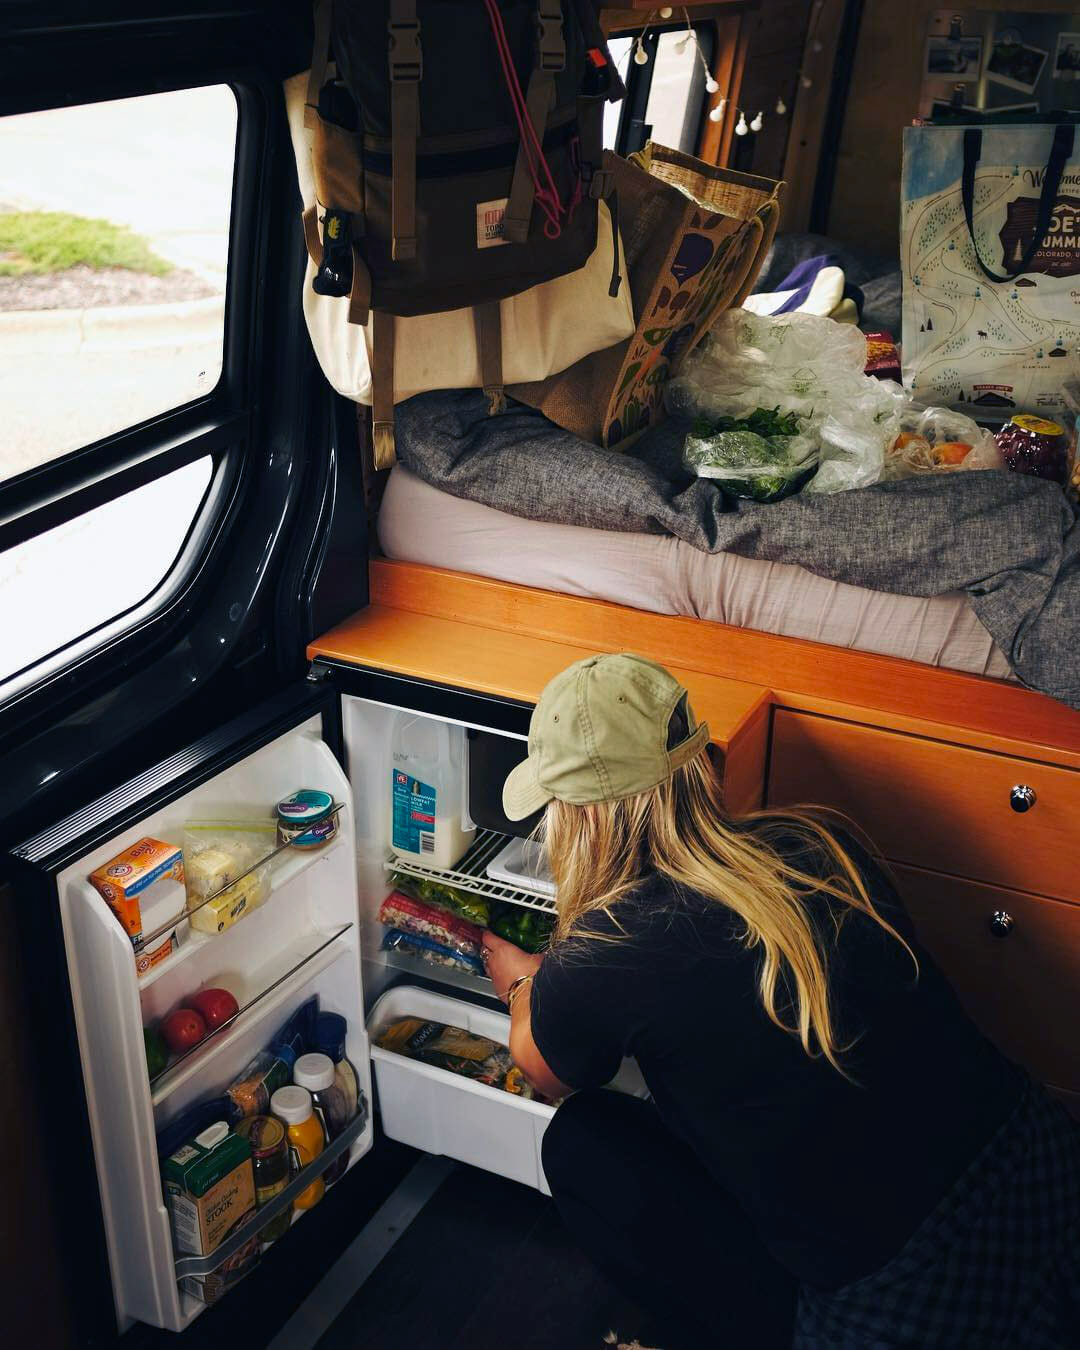 Keeping food cold using a 12v refrigerator in a campervan conversion